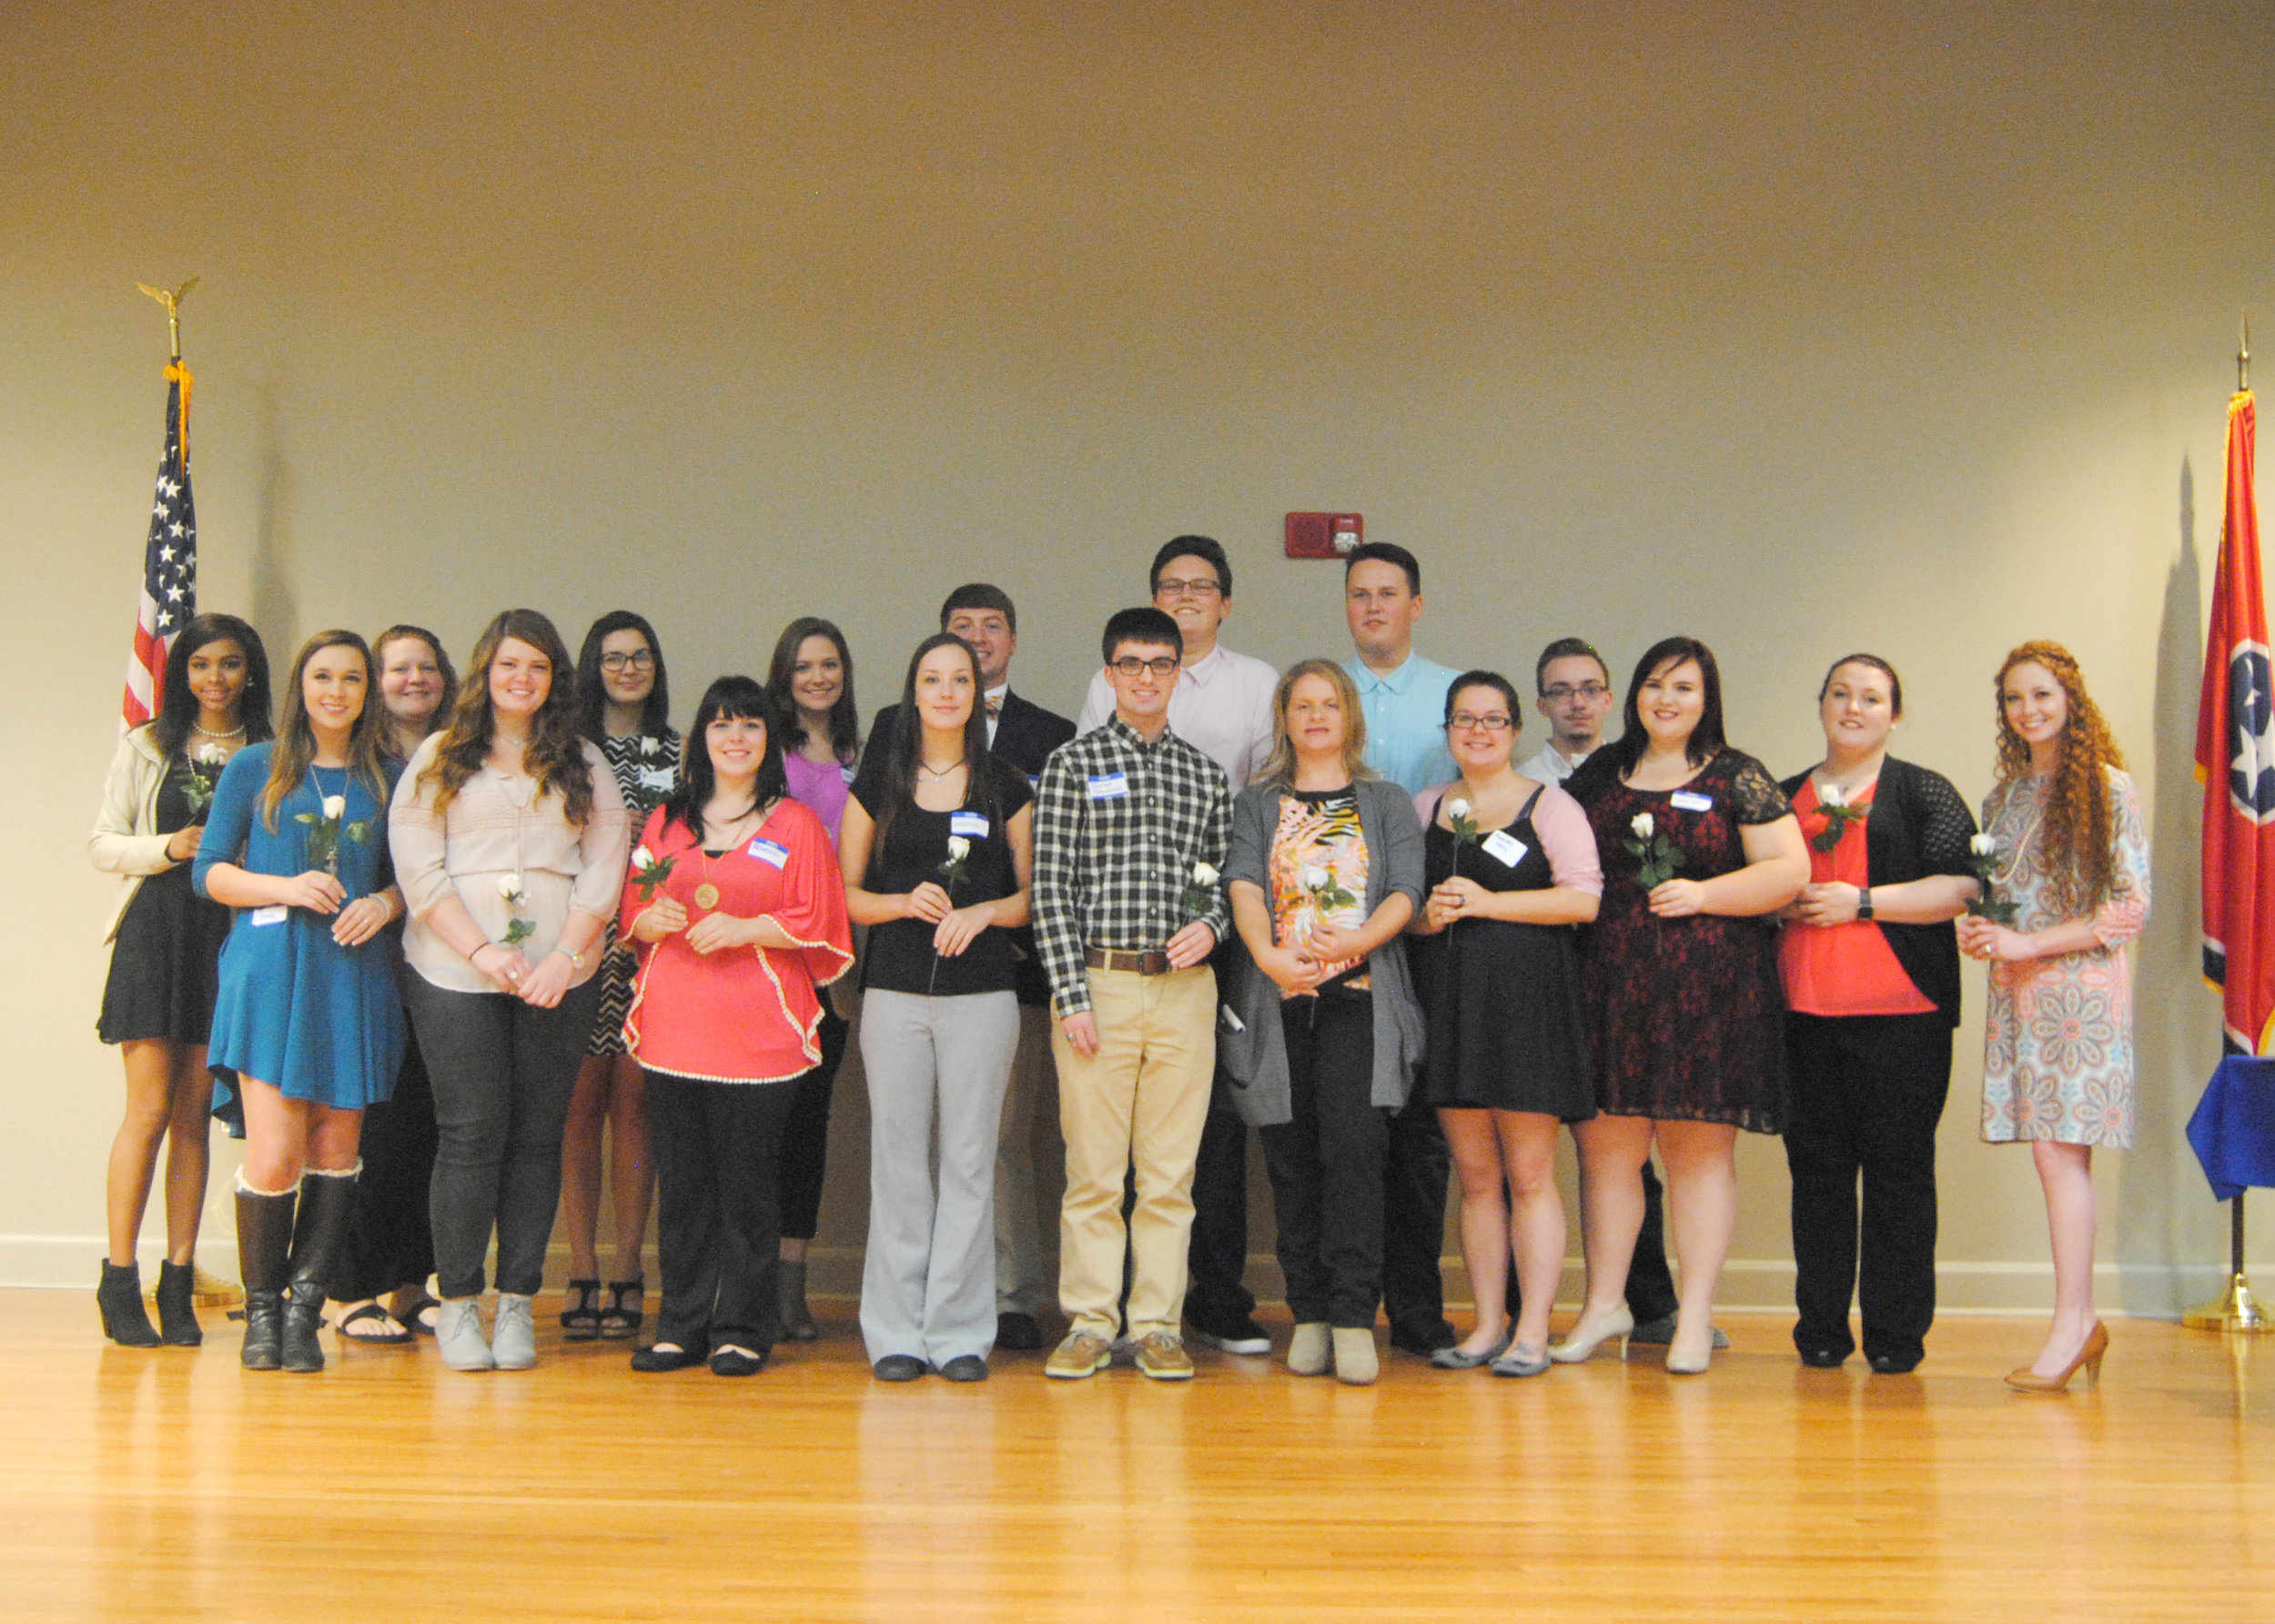 DSCC students inducted into the PTK honorary society include (front row L to R) Brooke Evans of Dyersburg, Lydia Hubbard of Covington, Rebecca Brown of Munford, Breanna Kelley of Drummonds, Garret Steelman of Halls, Wyndi Heavner of Munford, Kimberly Terry of Munford, Sarah Davis of Gilt Edge, Rachel Isaak of Gates, Jordan Weaver of Brighton, (back row L to R) Kayla Bowie of Trenton, Maranda McCormick of Alamo, Lauren Juarez of Brighton, Haley Russell of Brighton, Evan Montgomery of Atoka, Nicholas Johnston of Munford, Brandon Johnston of Munford, and Patrick Copps of Dyersburg.